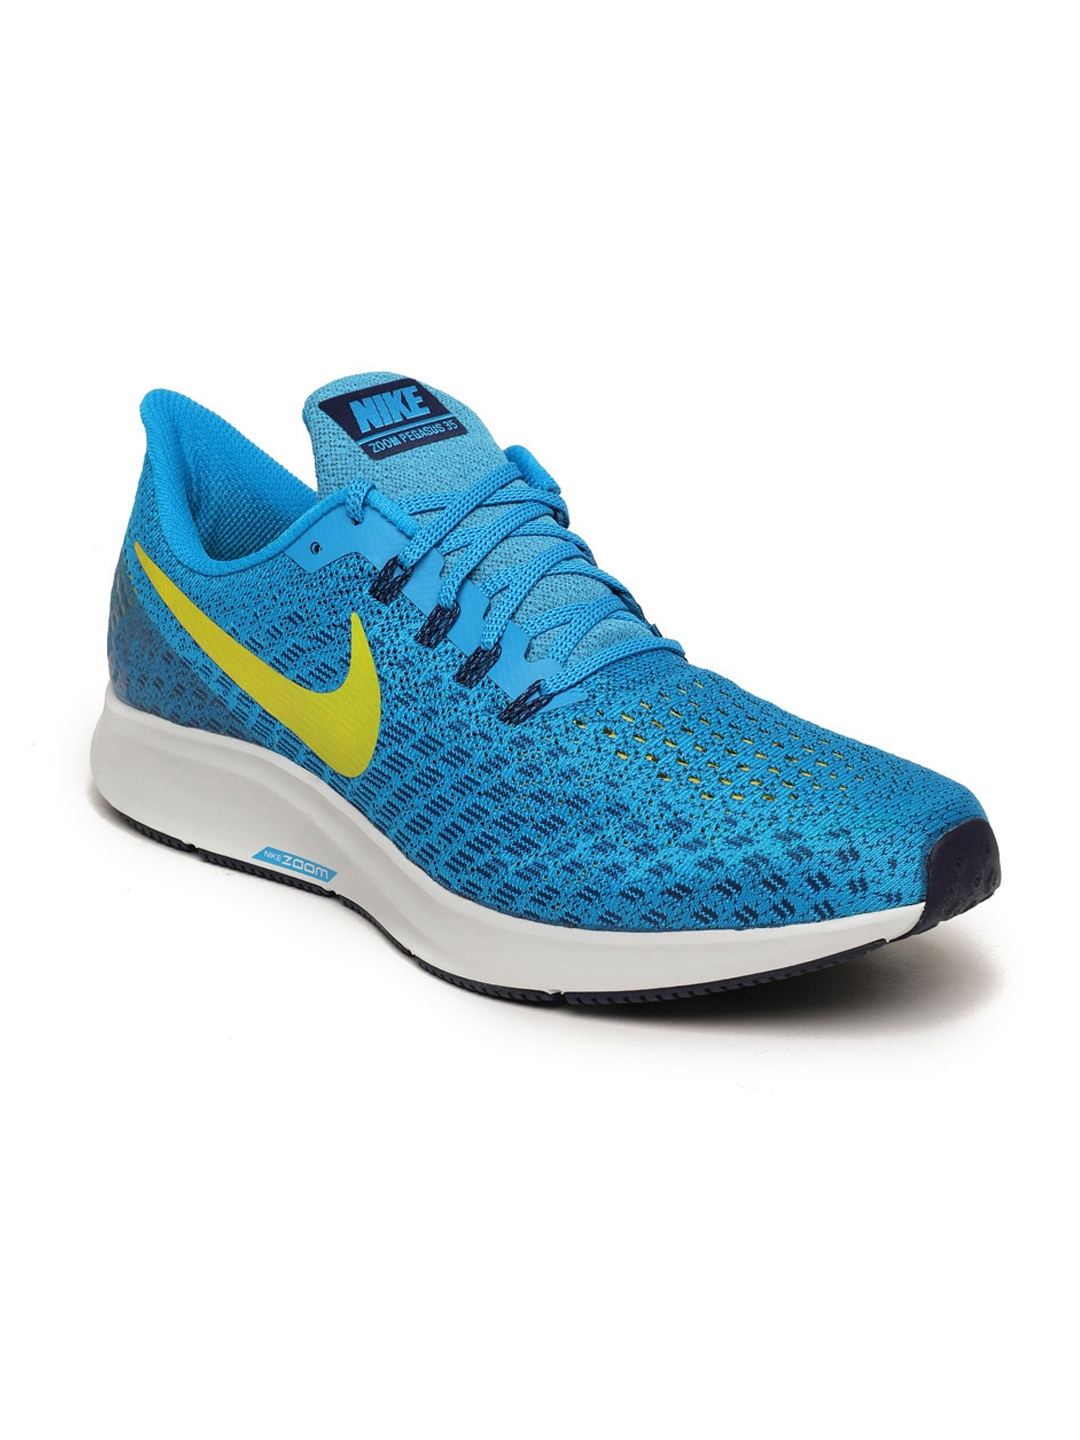 7335e0a5cc336 Buy Nike Men Blue Air Zoom Pegasus 35 Running Shoes - Sports Shoes ...